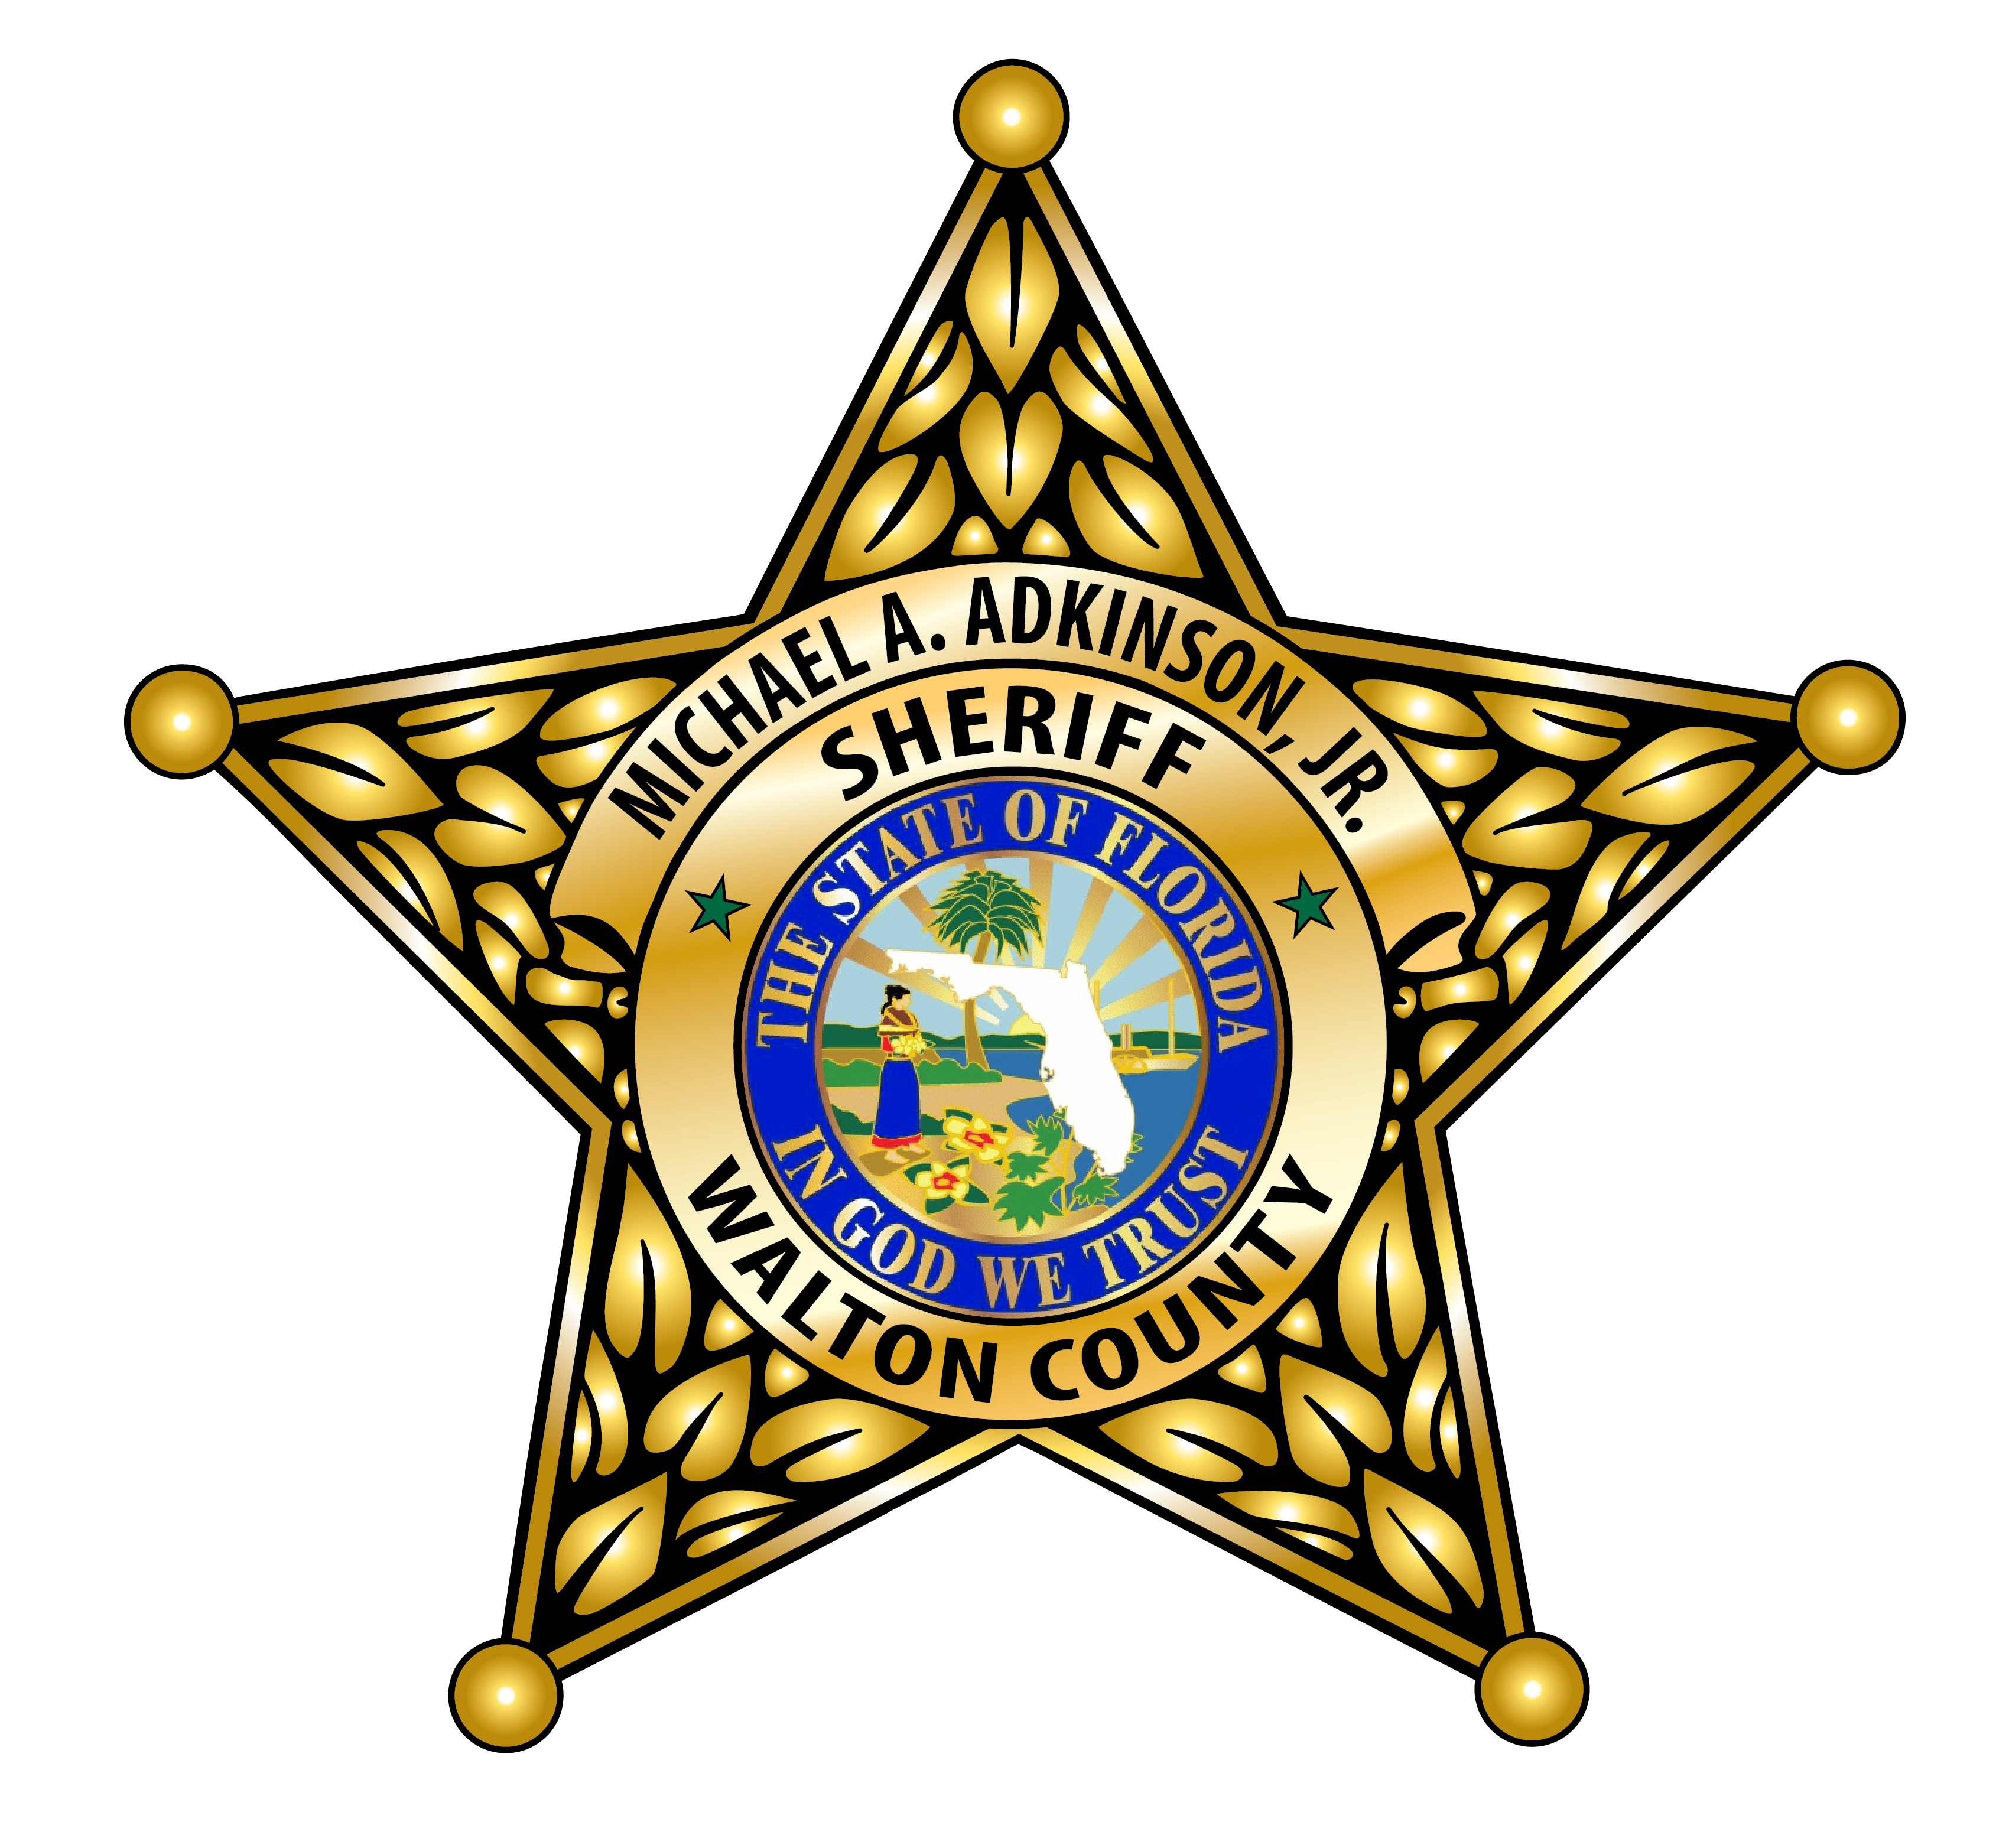 Walton County Sheriff's Office, FL Police Jobs